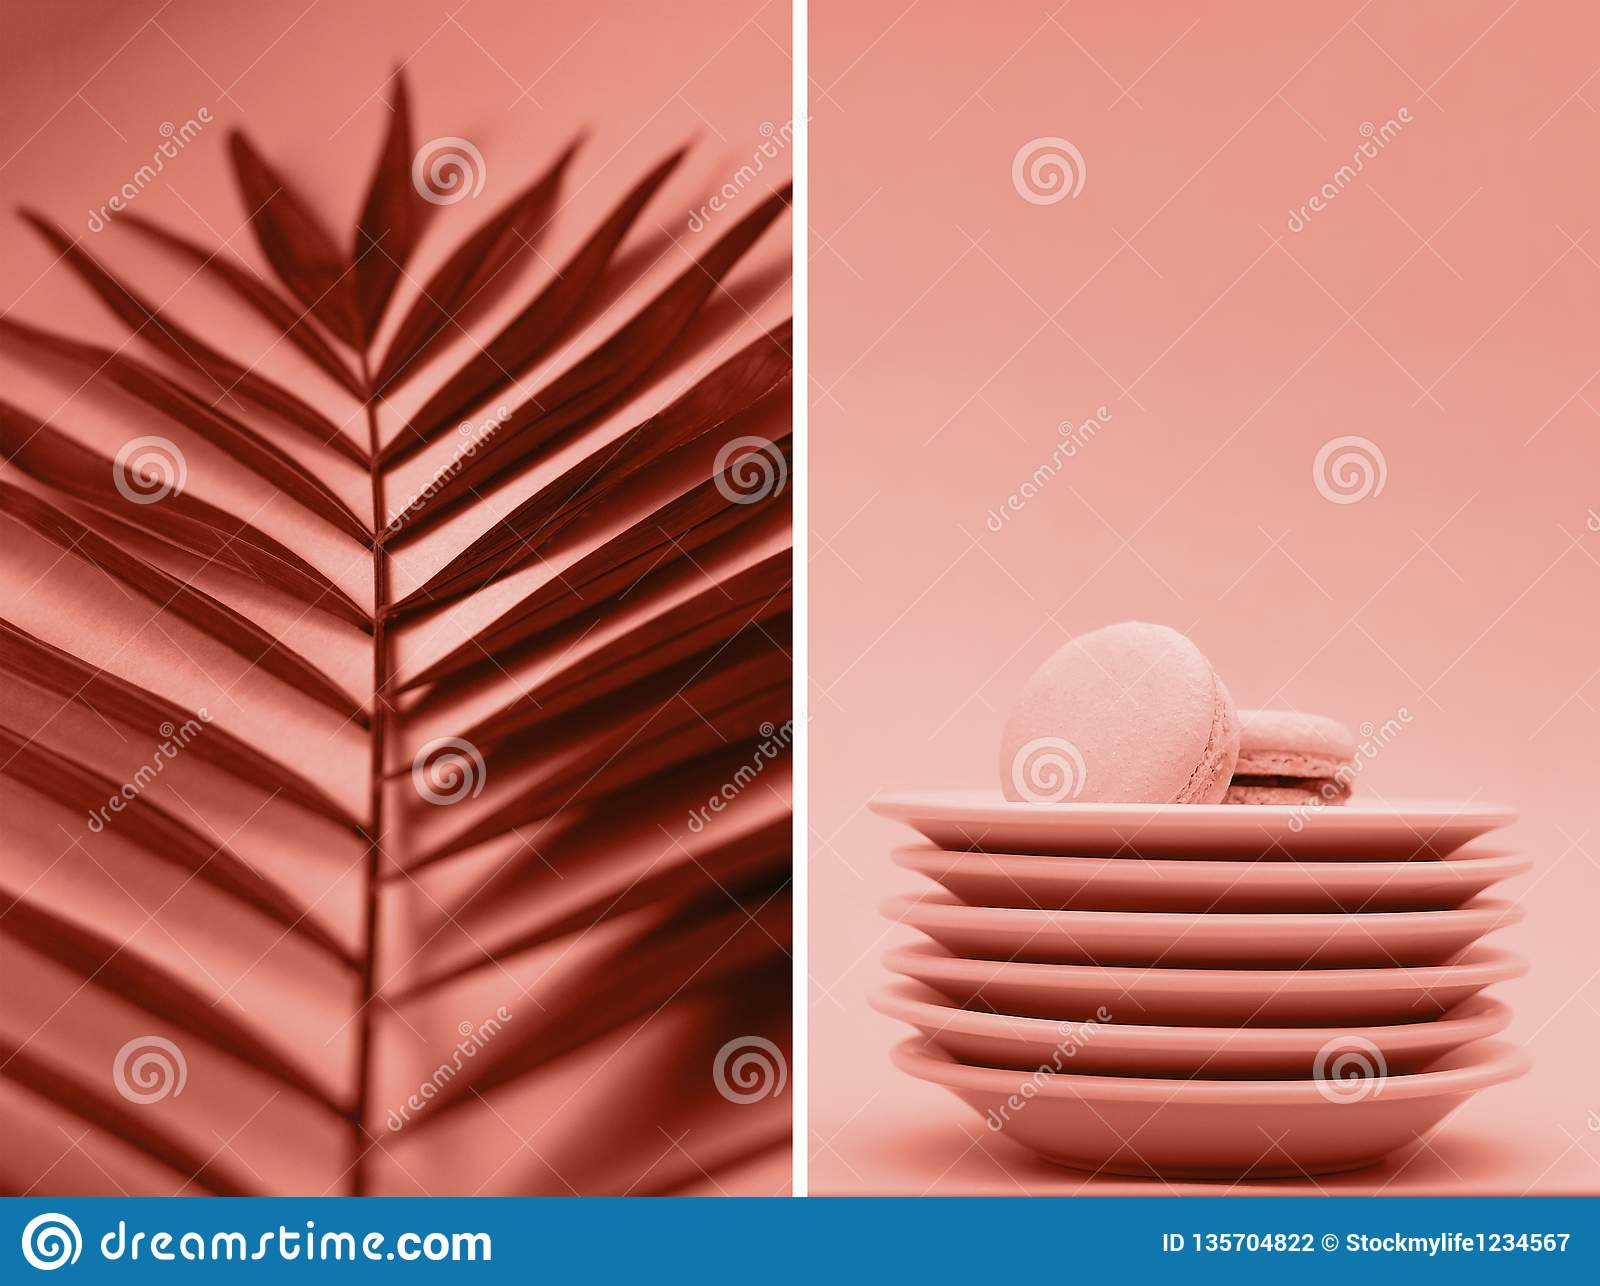 A collage of photos of coral color with palm branches and macaroons